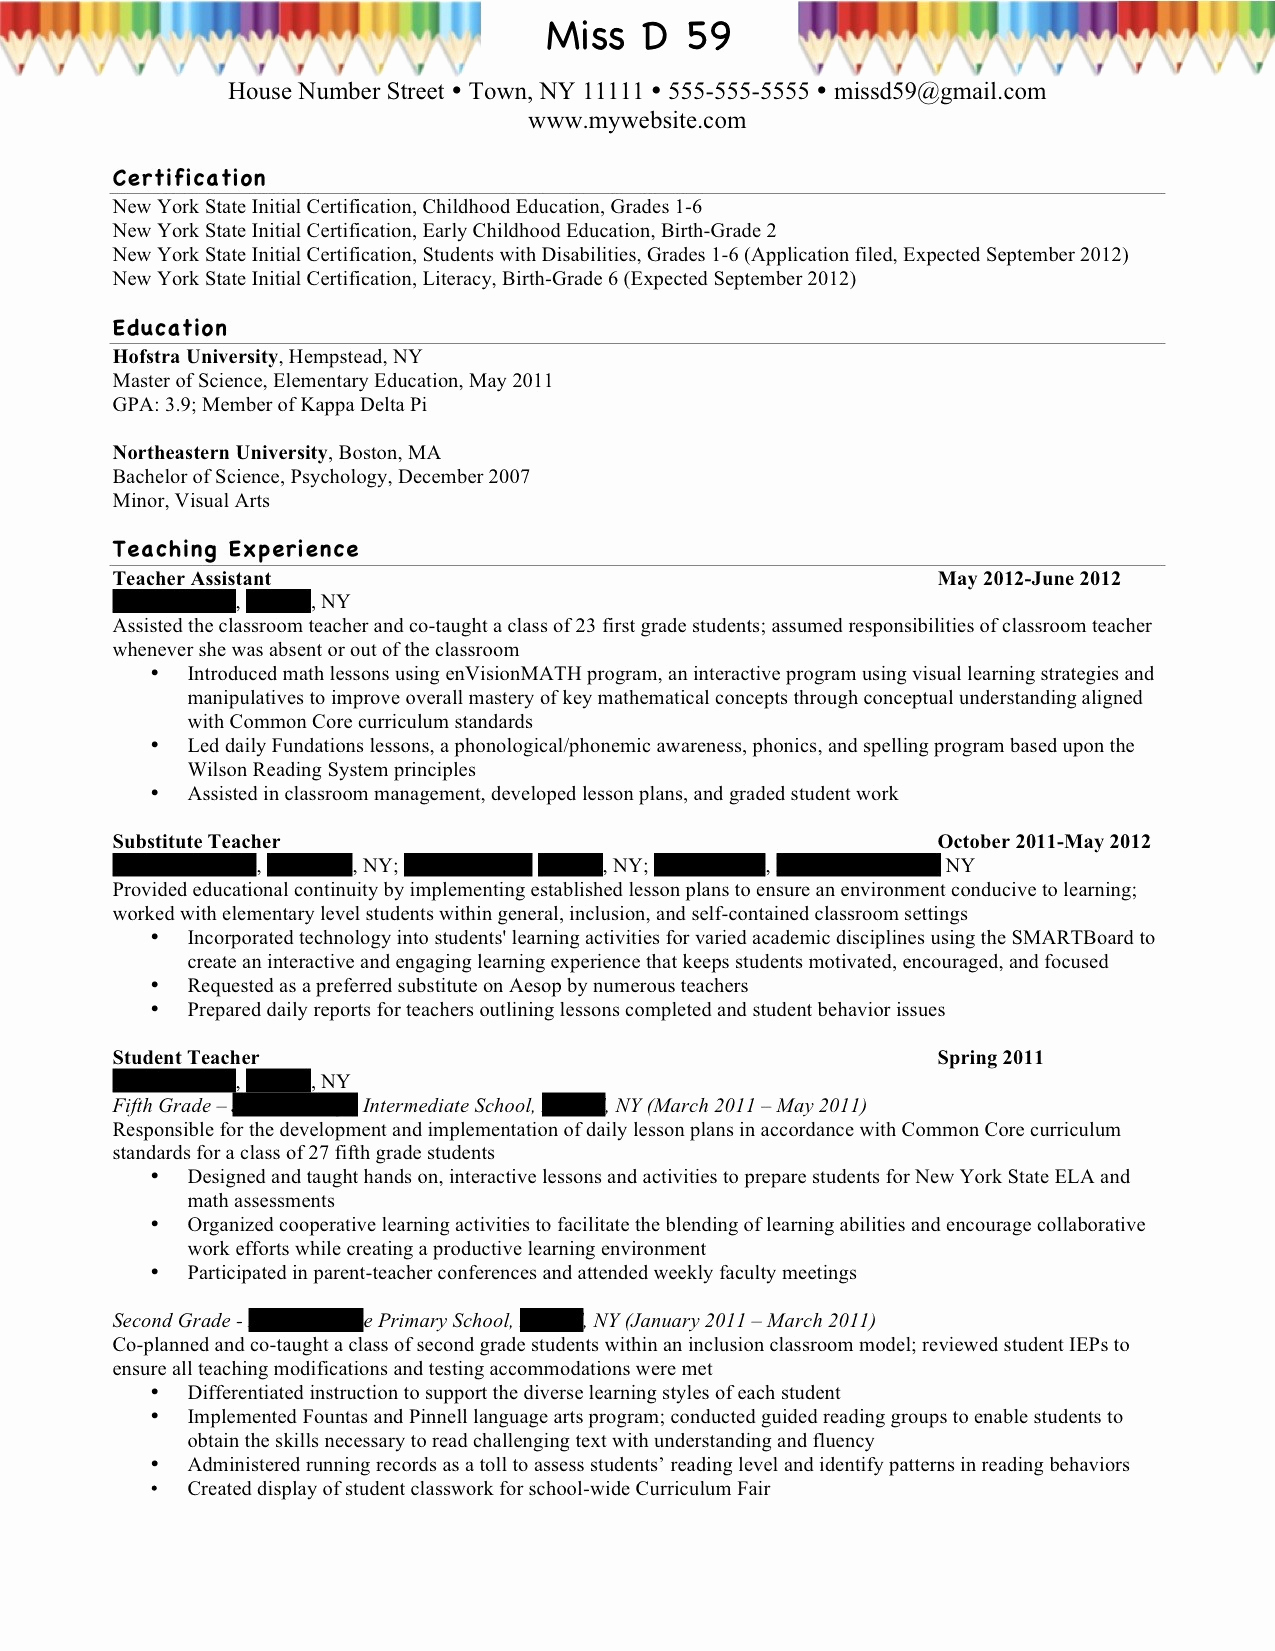 Best Place to Post Resume - 20 Beautiful Stock where to Post Resume